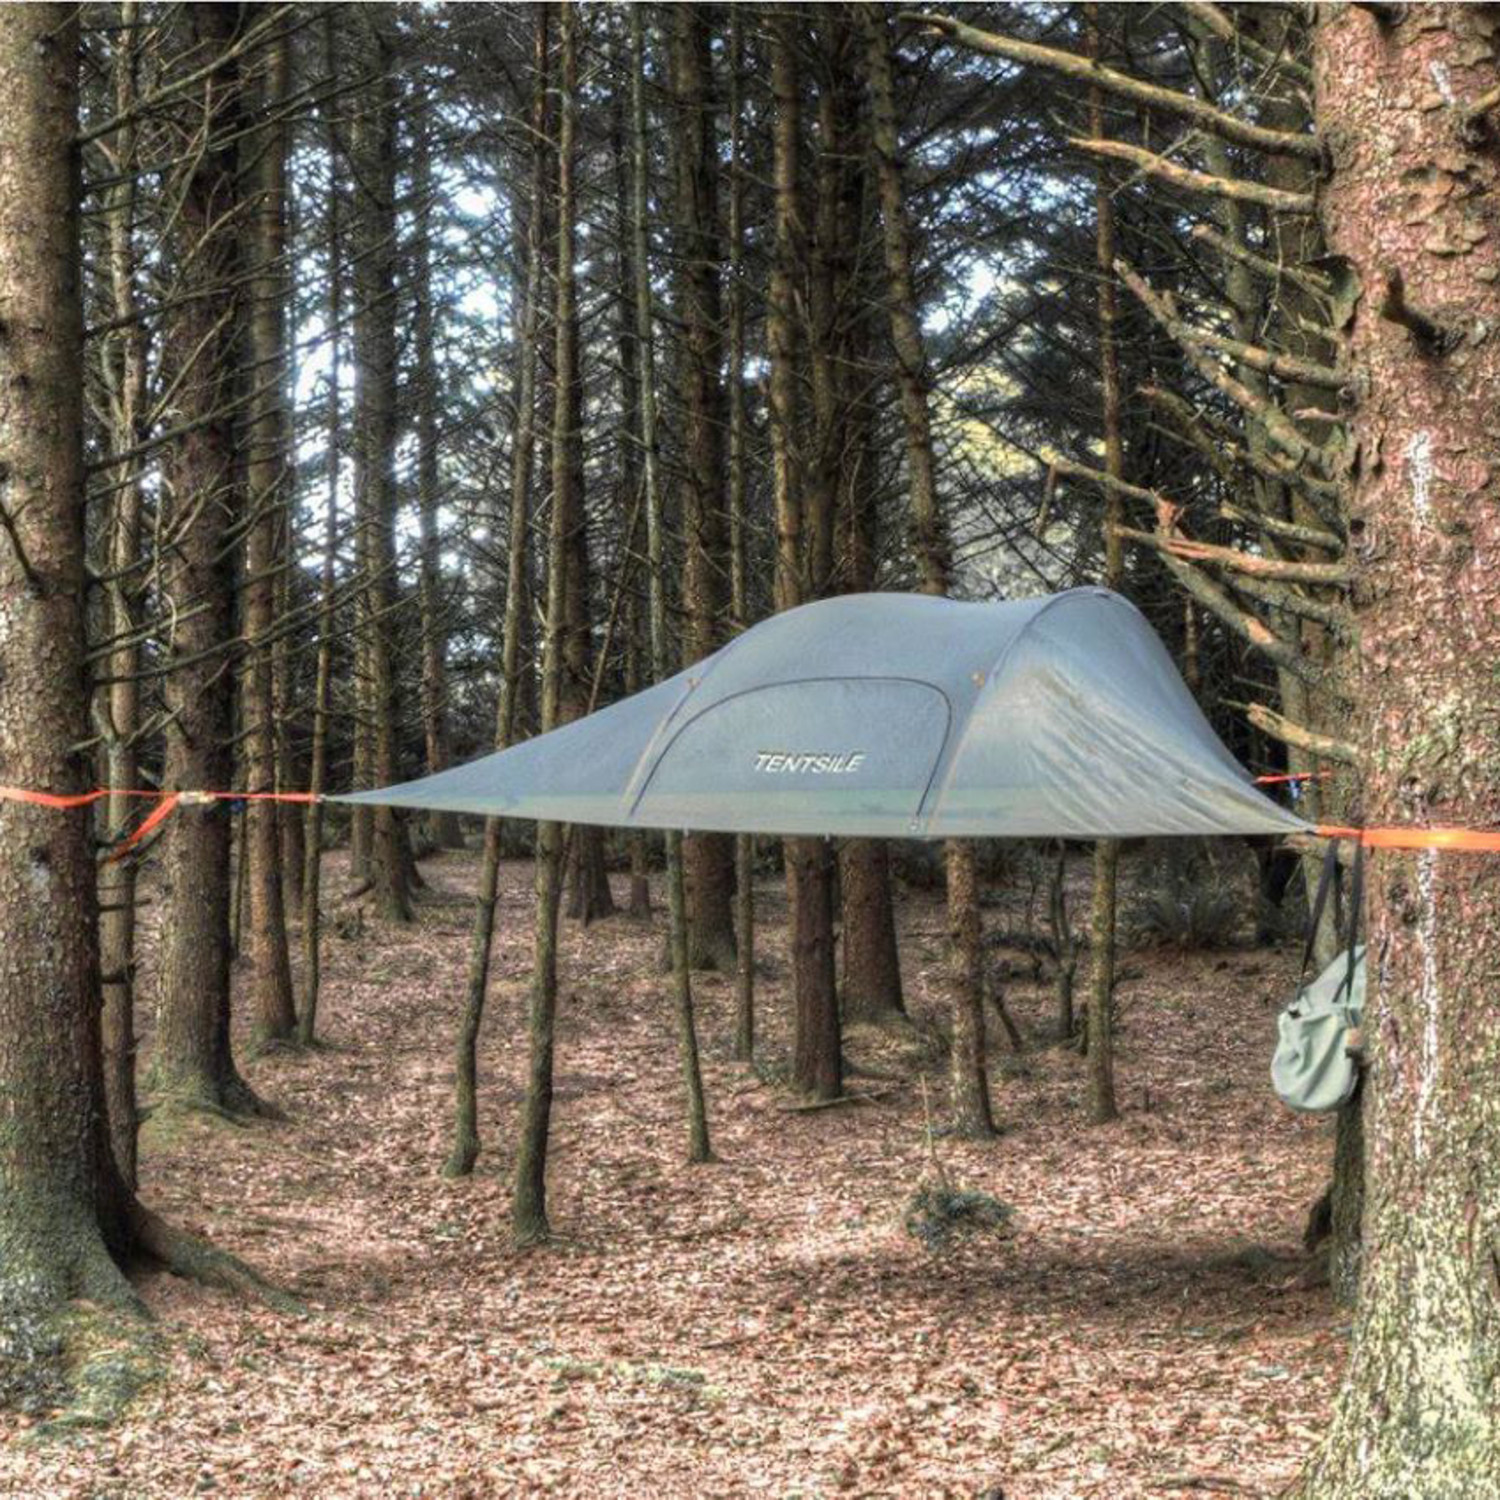 Tentsile // Stingray Tree Tent // Camouflage Flysheet (Forest Green) & Tentsile // Stingray Tree Tent // Camouflage Flysheet (Forest ...